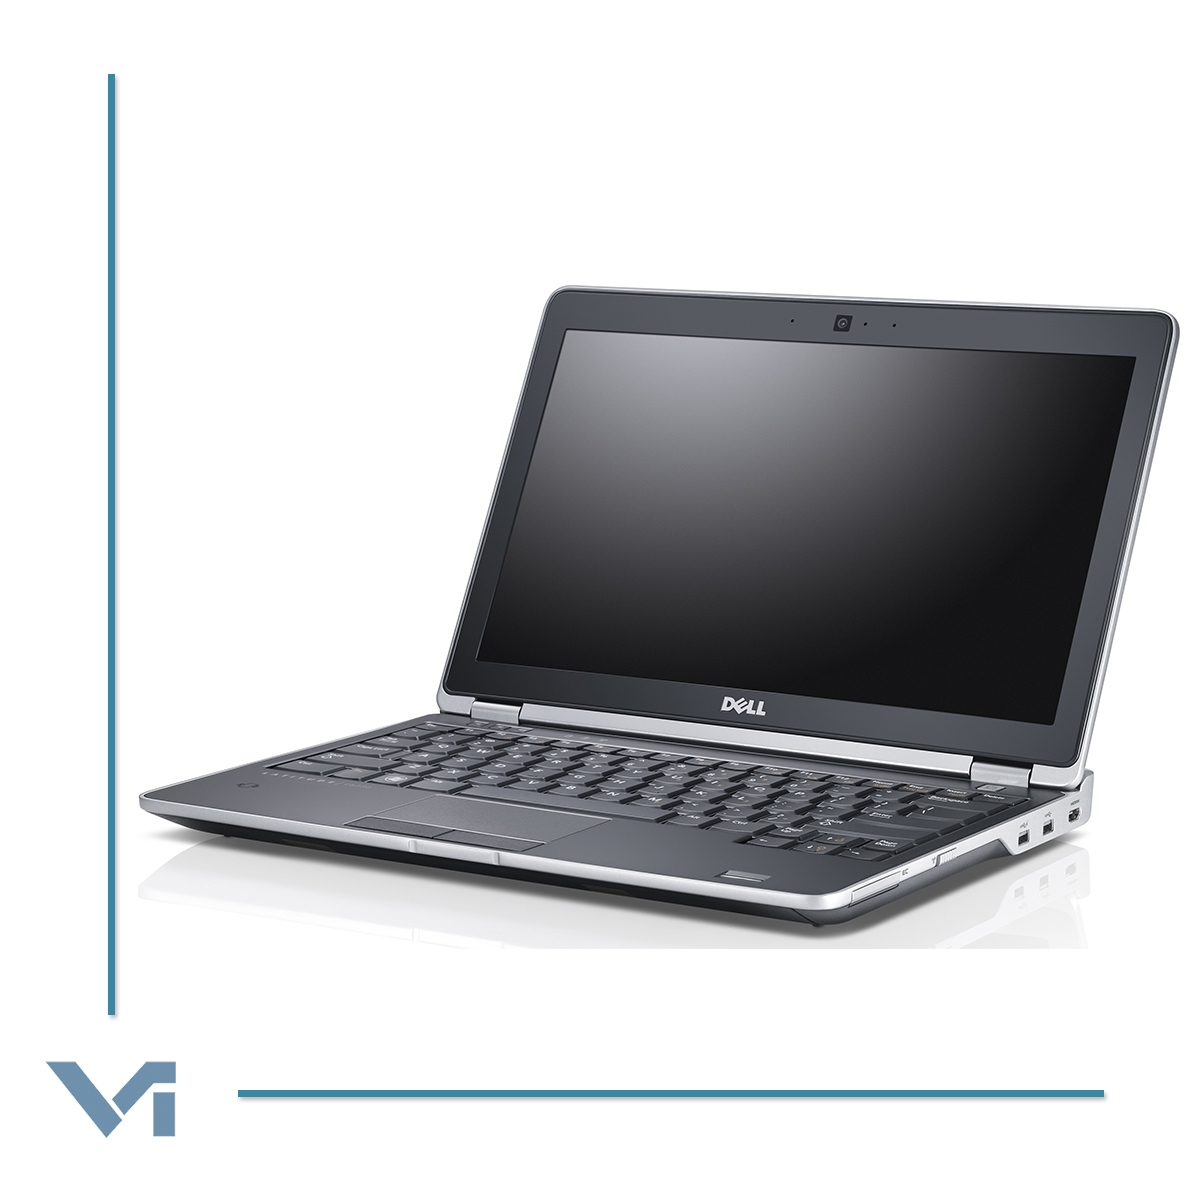 "Notebook DELL LATITUDE E6430 - Intel Core i5-3340M 4GB 128GB SSD 14.0"" HD+ DVD/RW Windows 7 Professional -NOCOLOR- Ricondizionato"